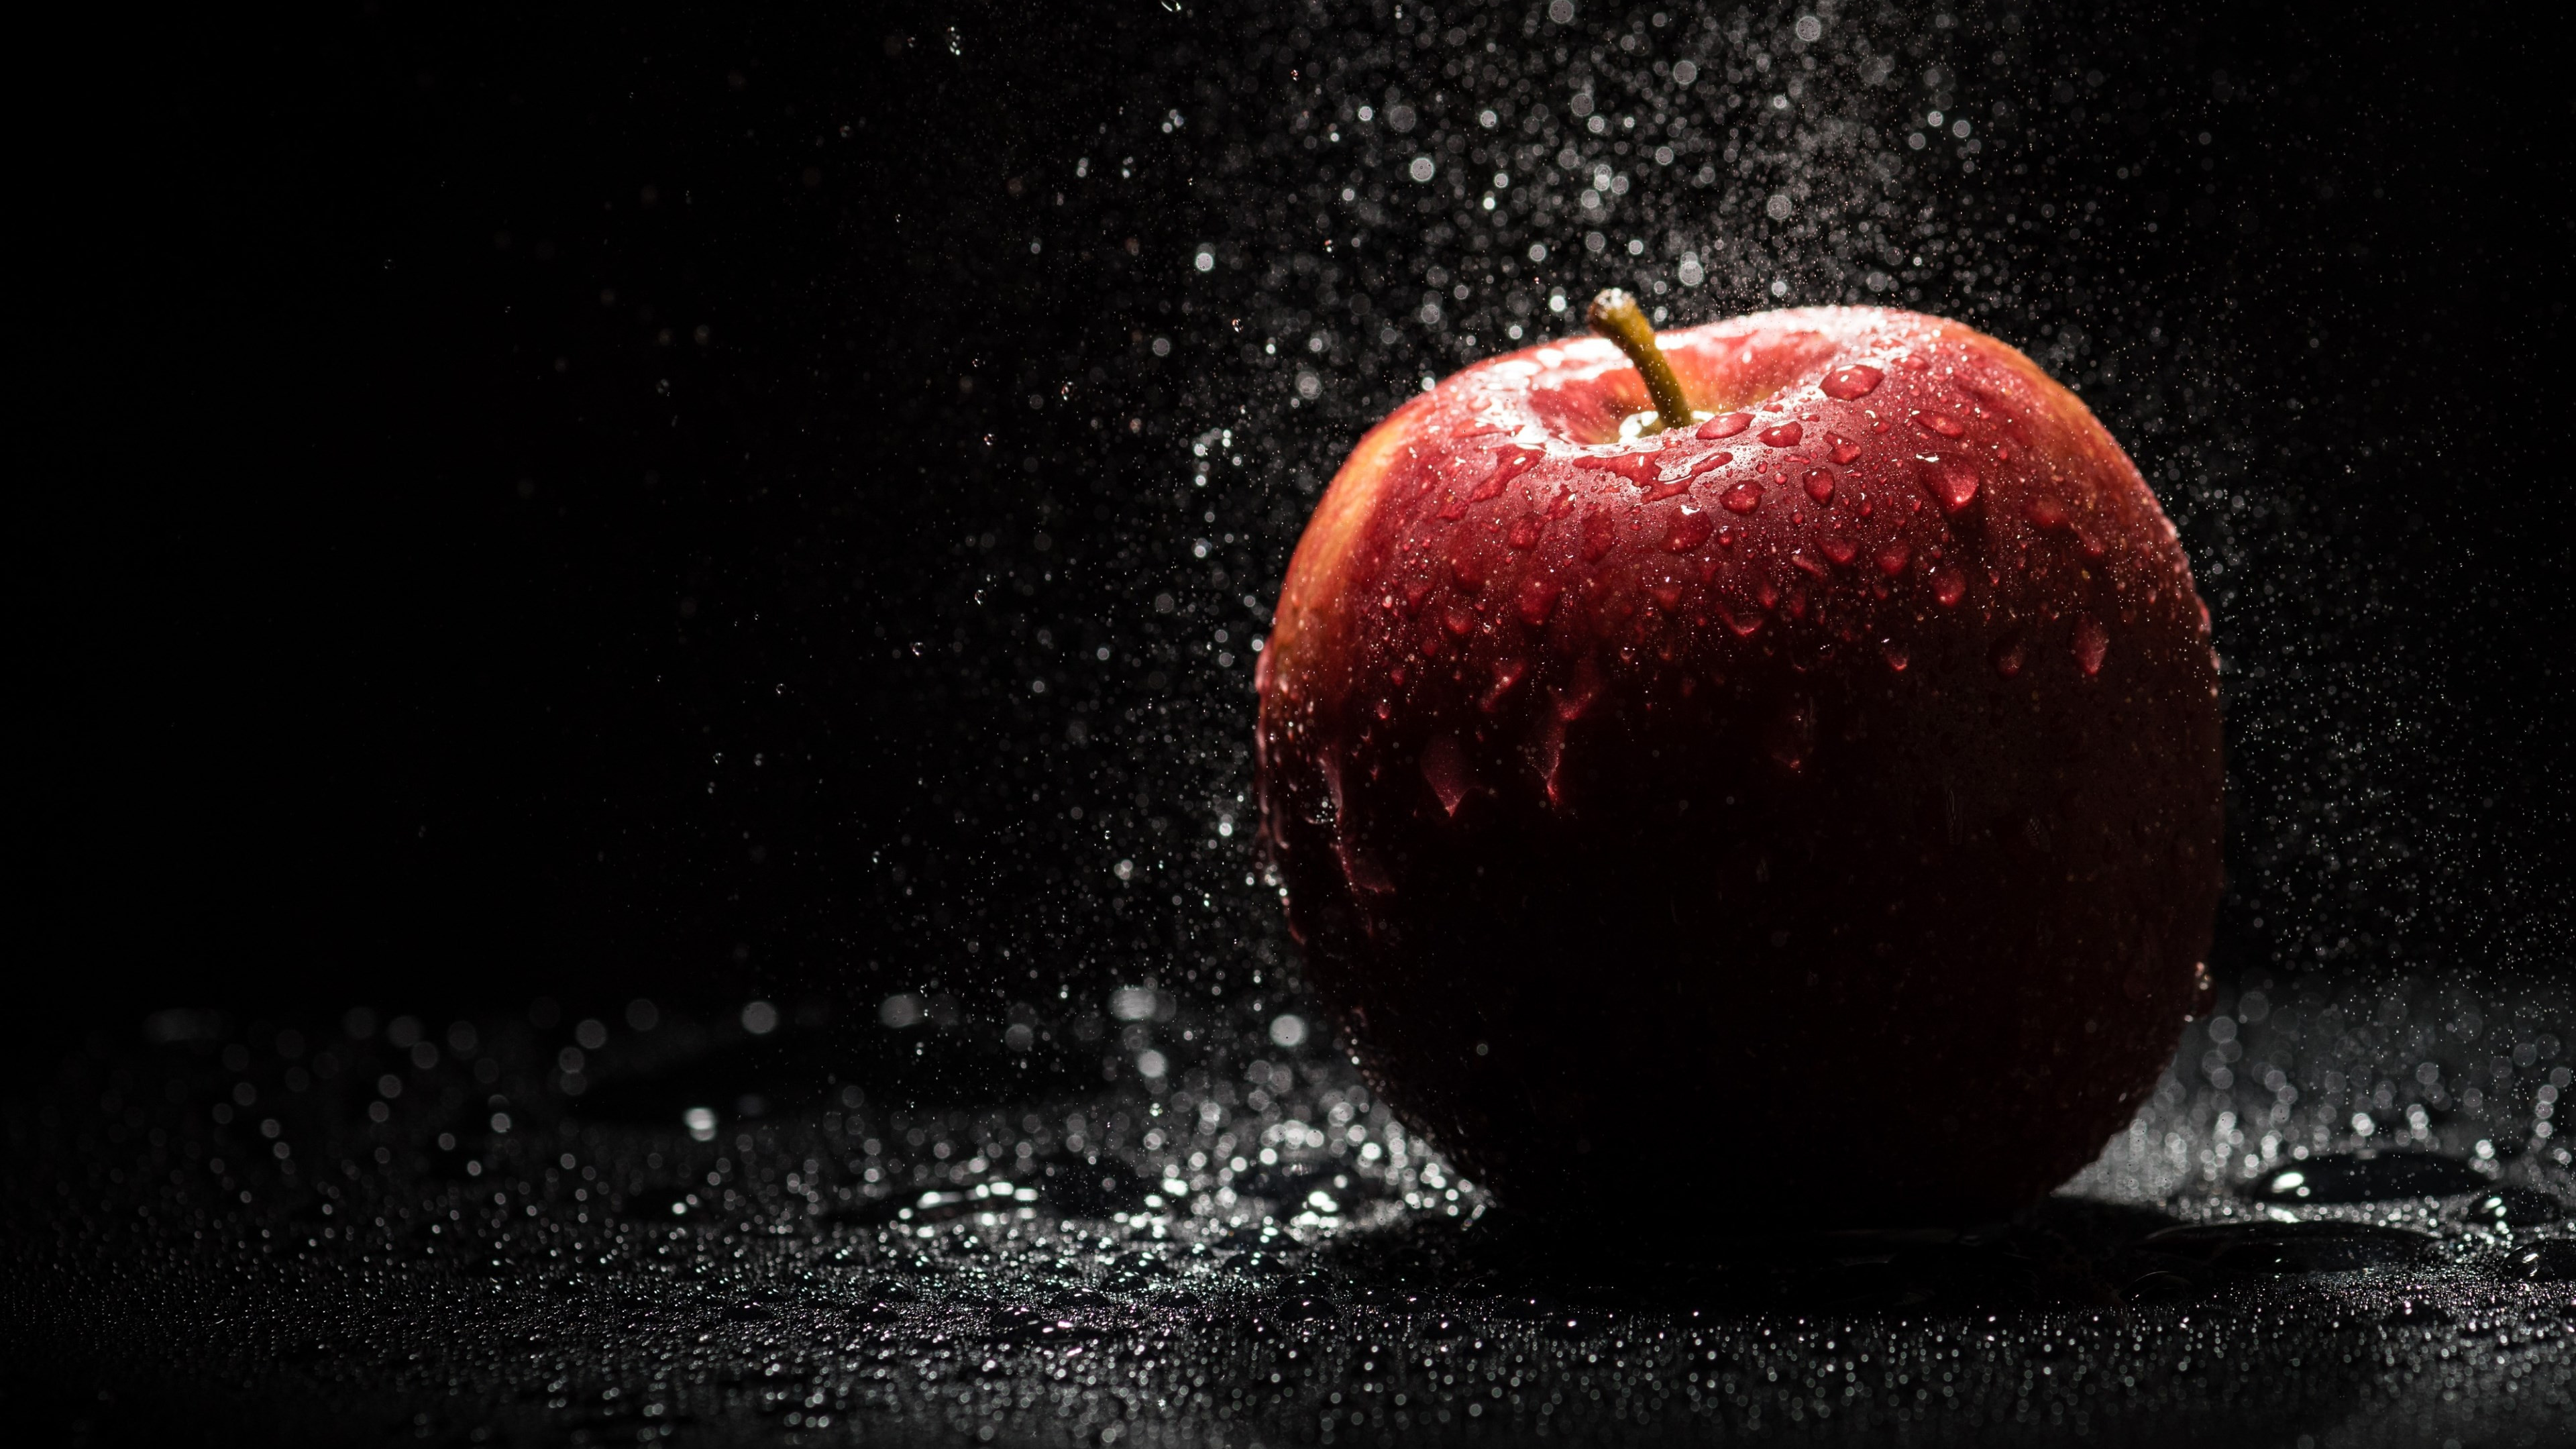 The apple, natural red apple wallpaper 3840x2160